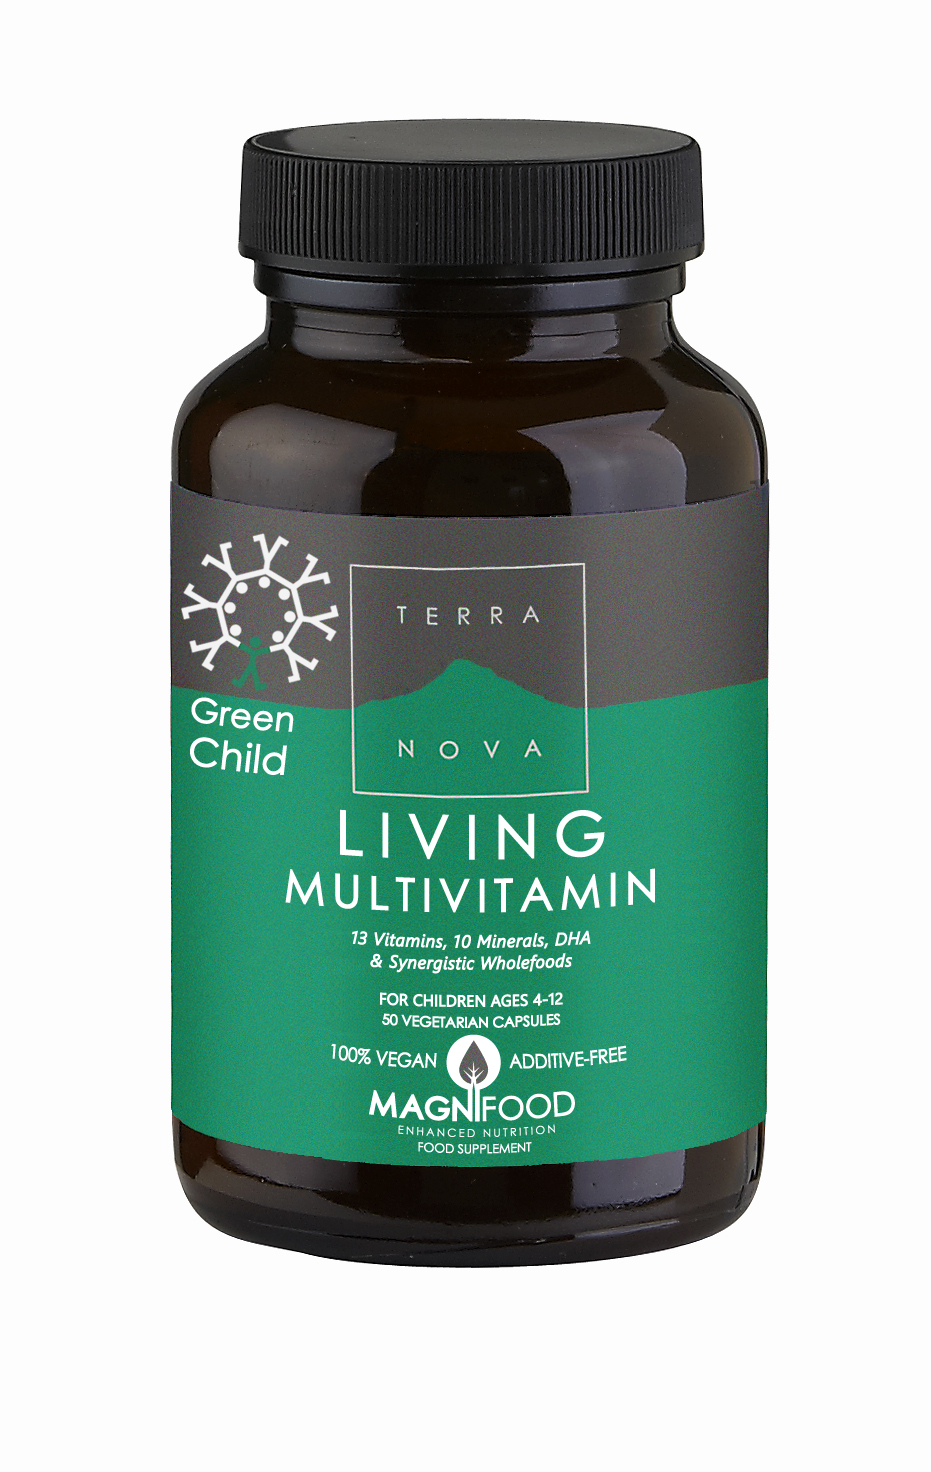 1new - GREEN CHILD LIVING MULTIVITAMIN.jpg